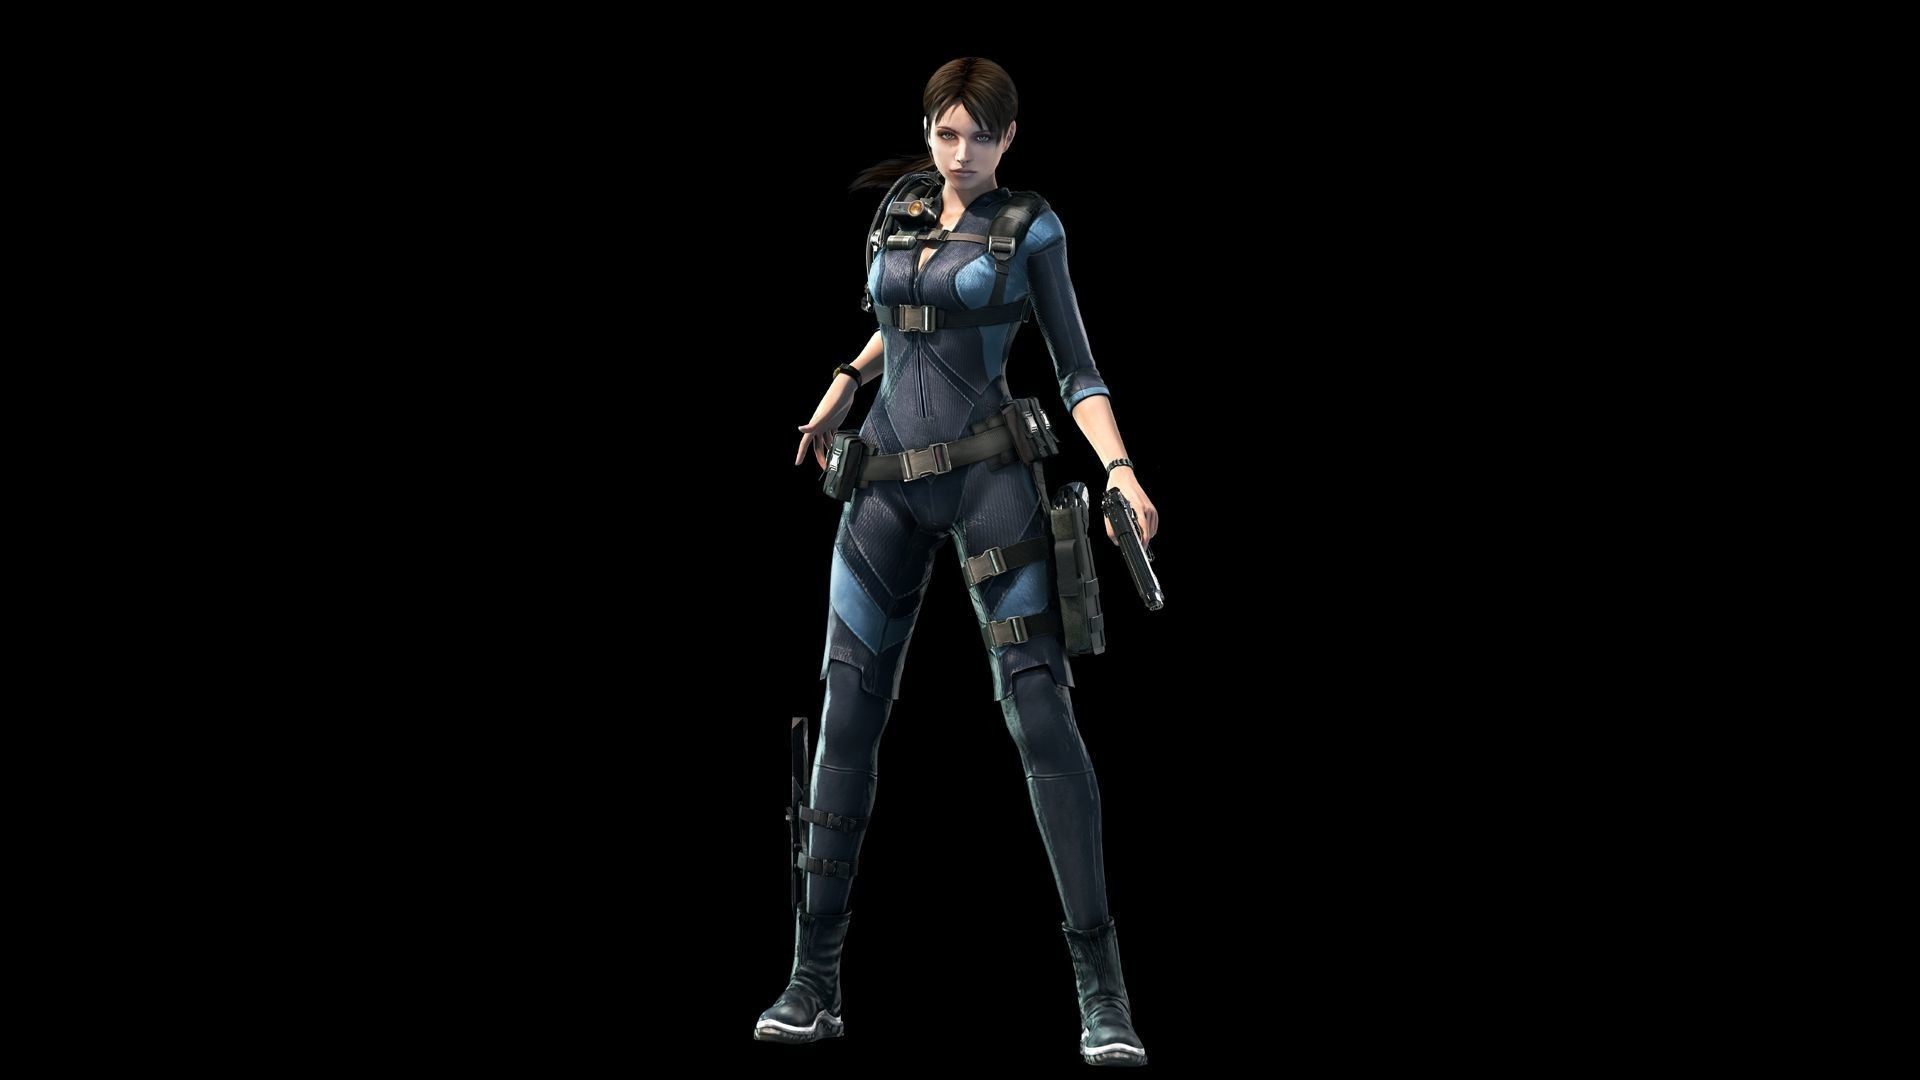 Res: 1920x1080, Claire Redfield - Resident Evil HD Wallpaper